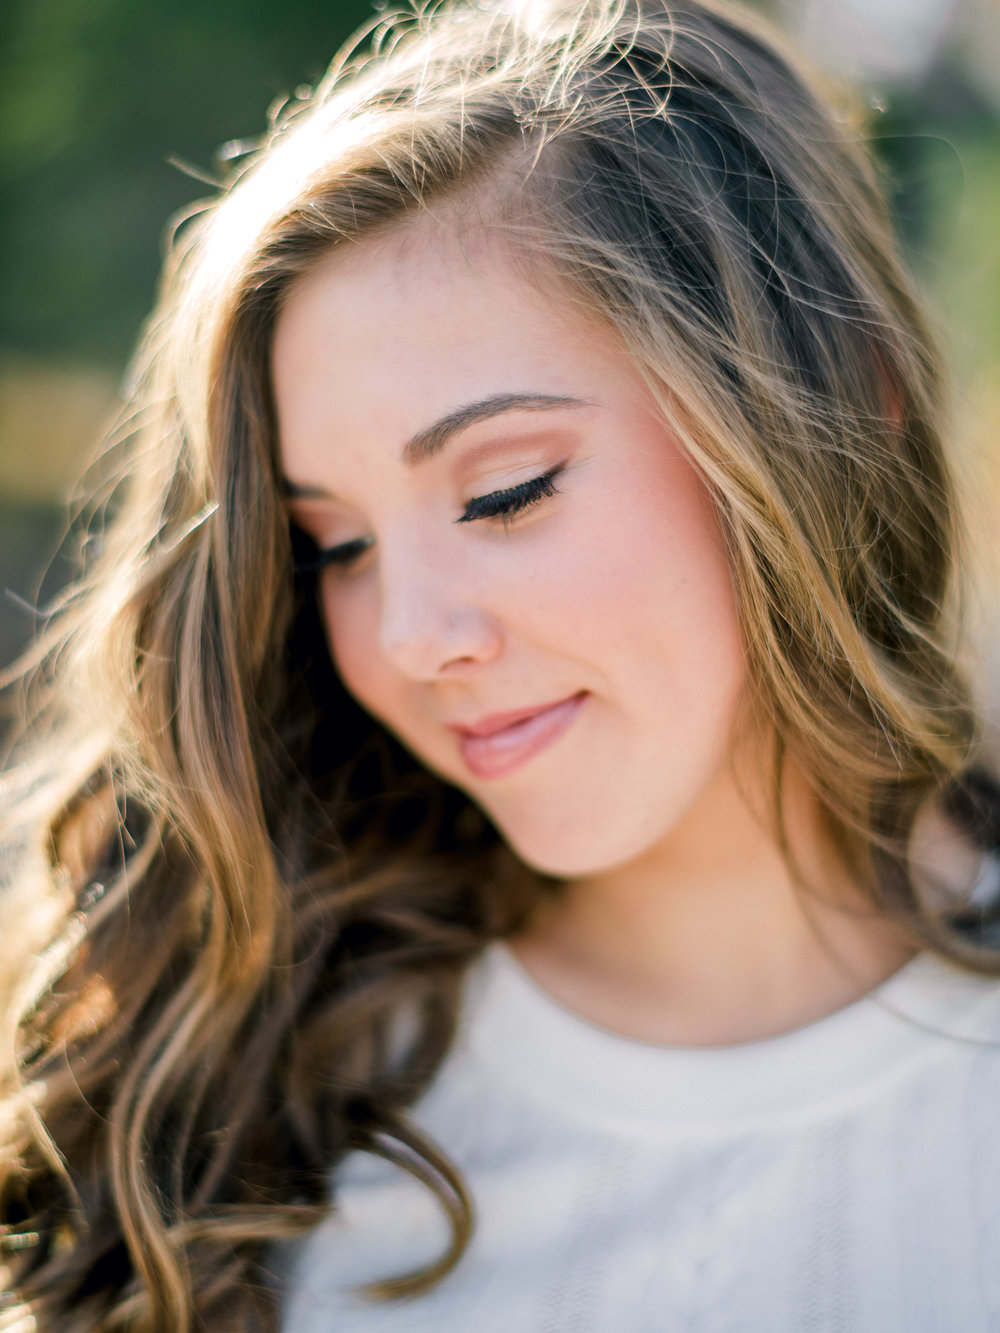 maddysenior (1 of 99).JPG